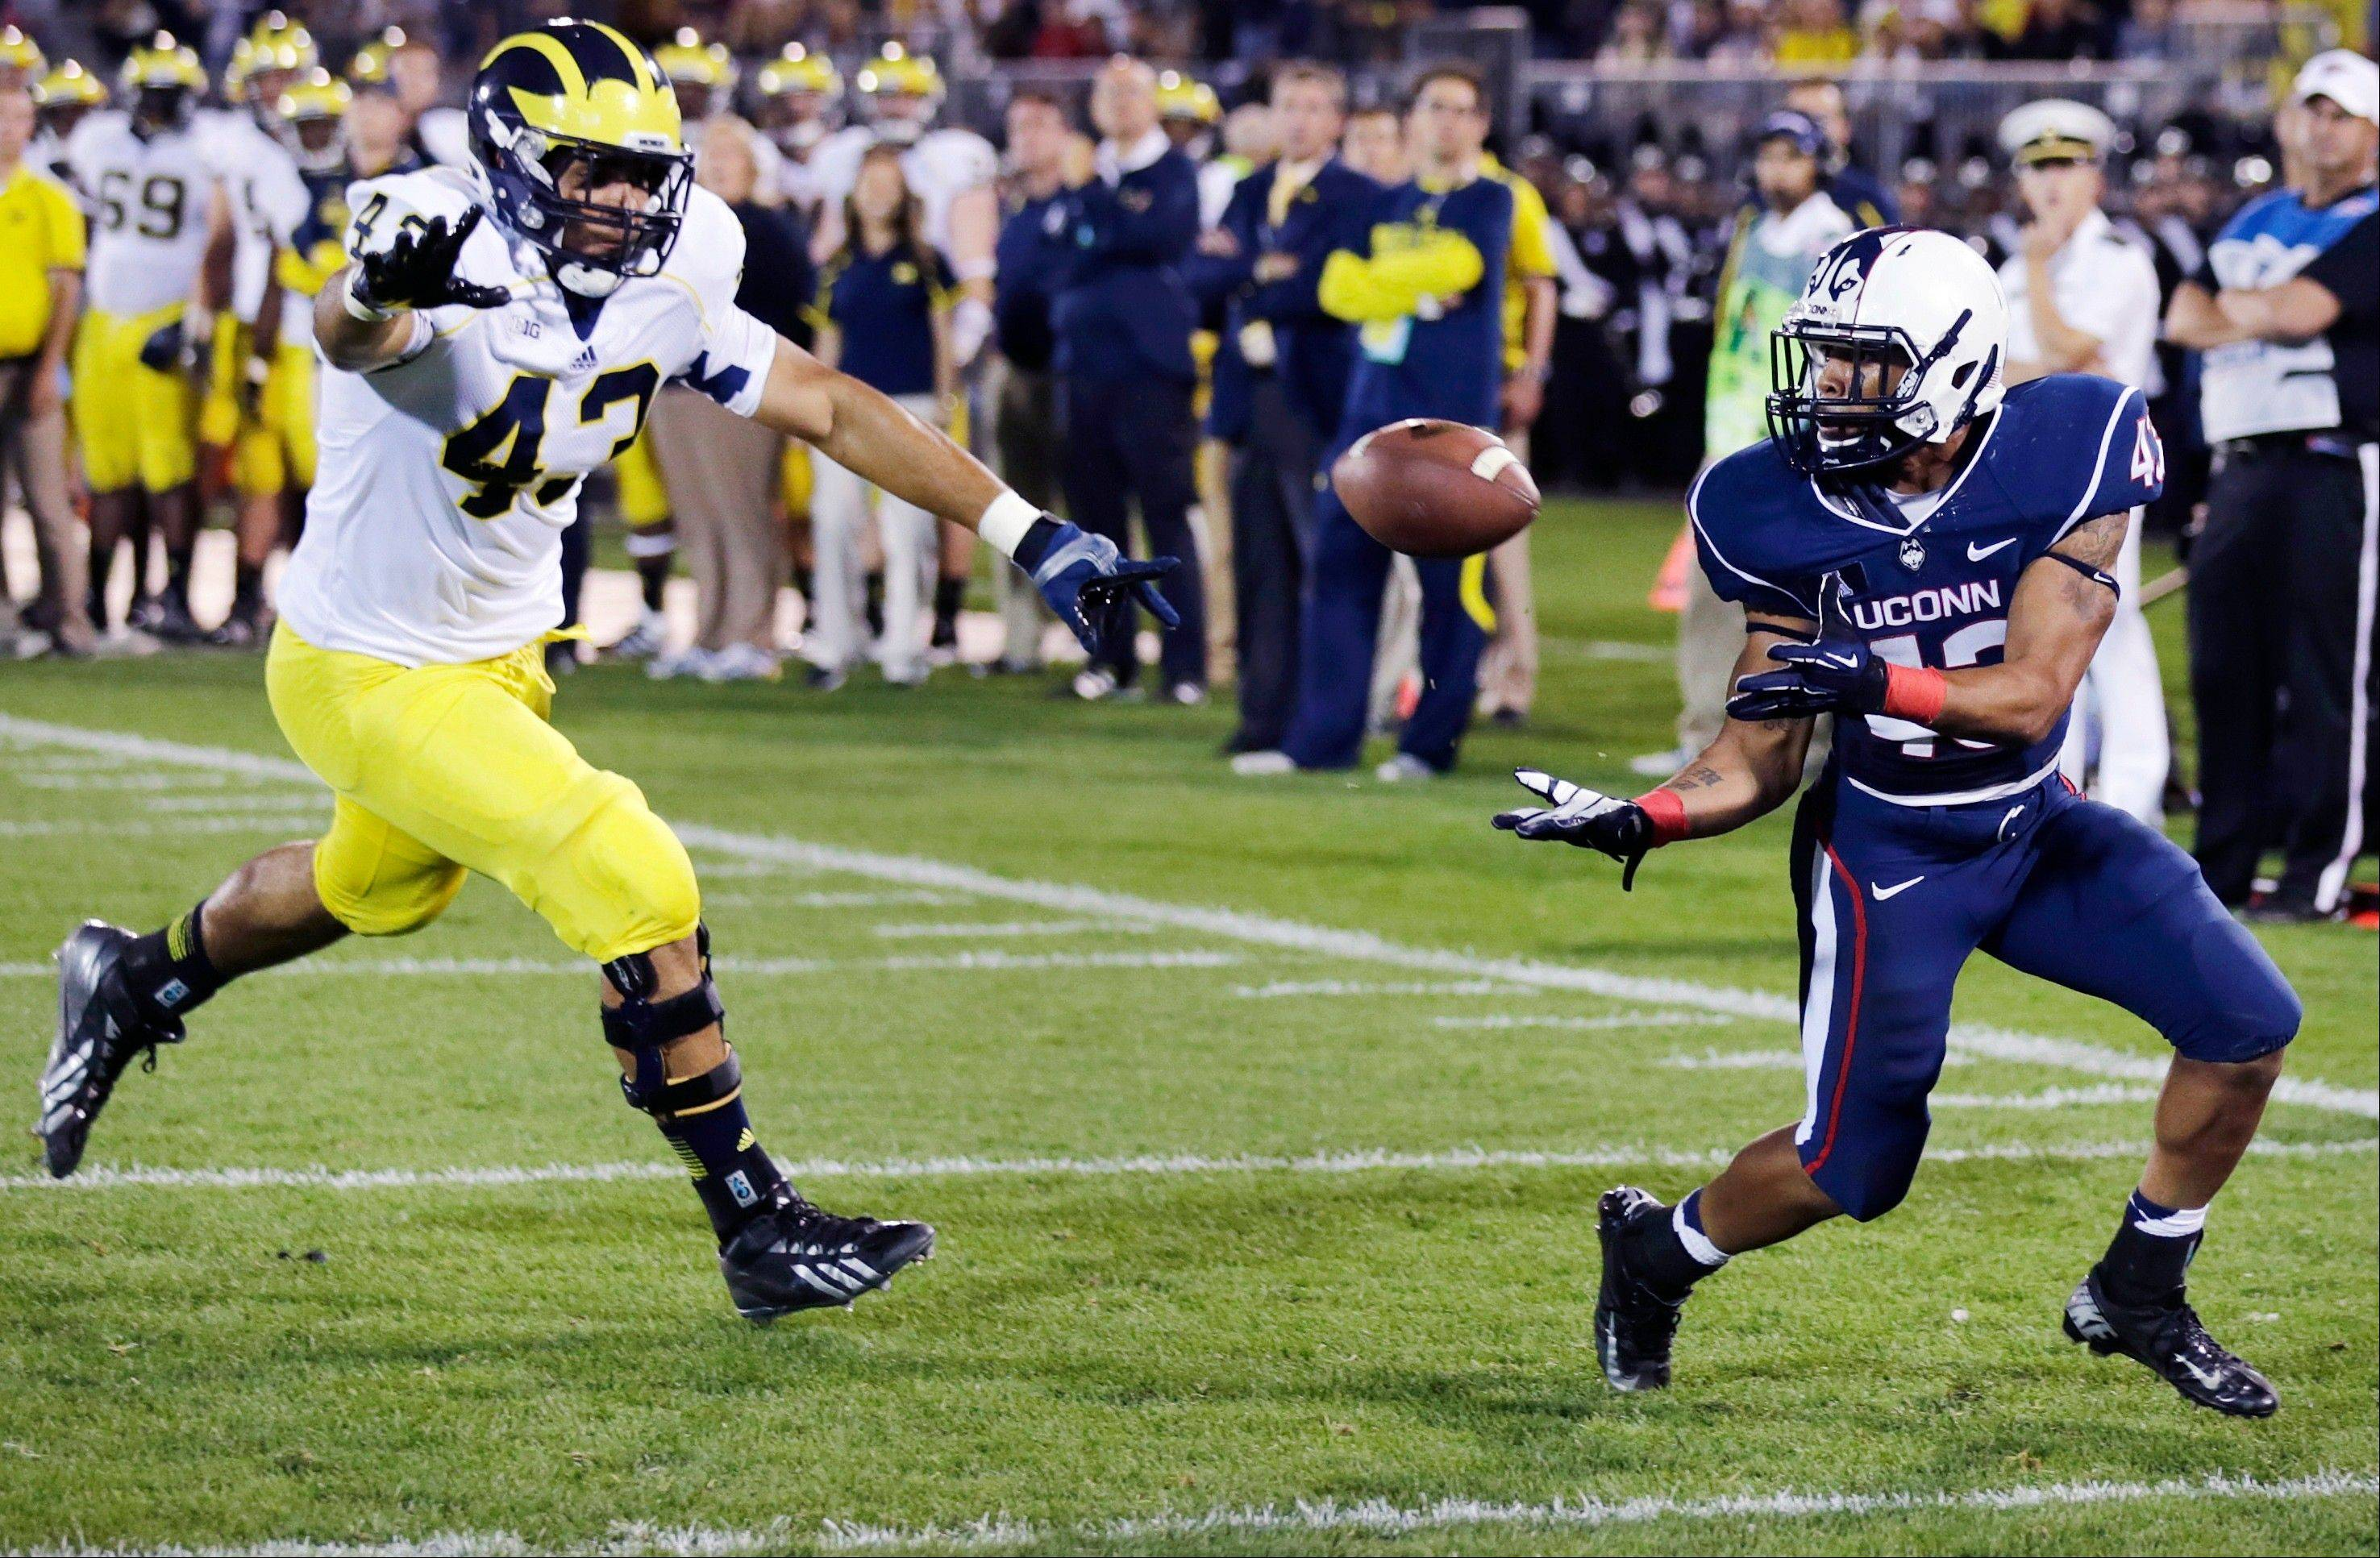 Connecticut running back Lyle McCombs, right, hauls in a touchdown pass against Michigan defensive lineman Chris Wormley during the second quarter of last Saturday�s game in East Hartford, Conn. The Wolverines came back from a 14-point, second-half deficit to win 24-21.